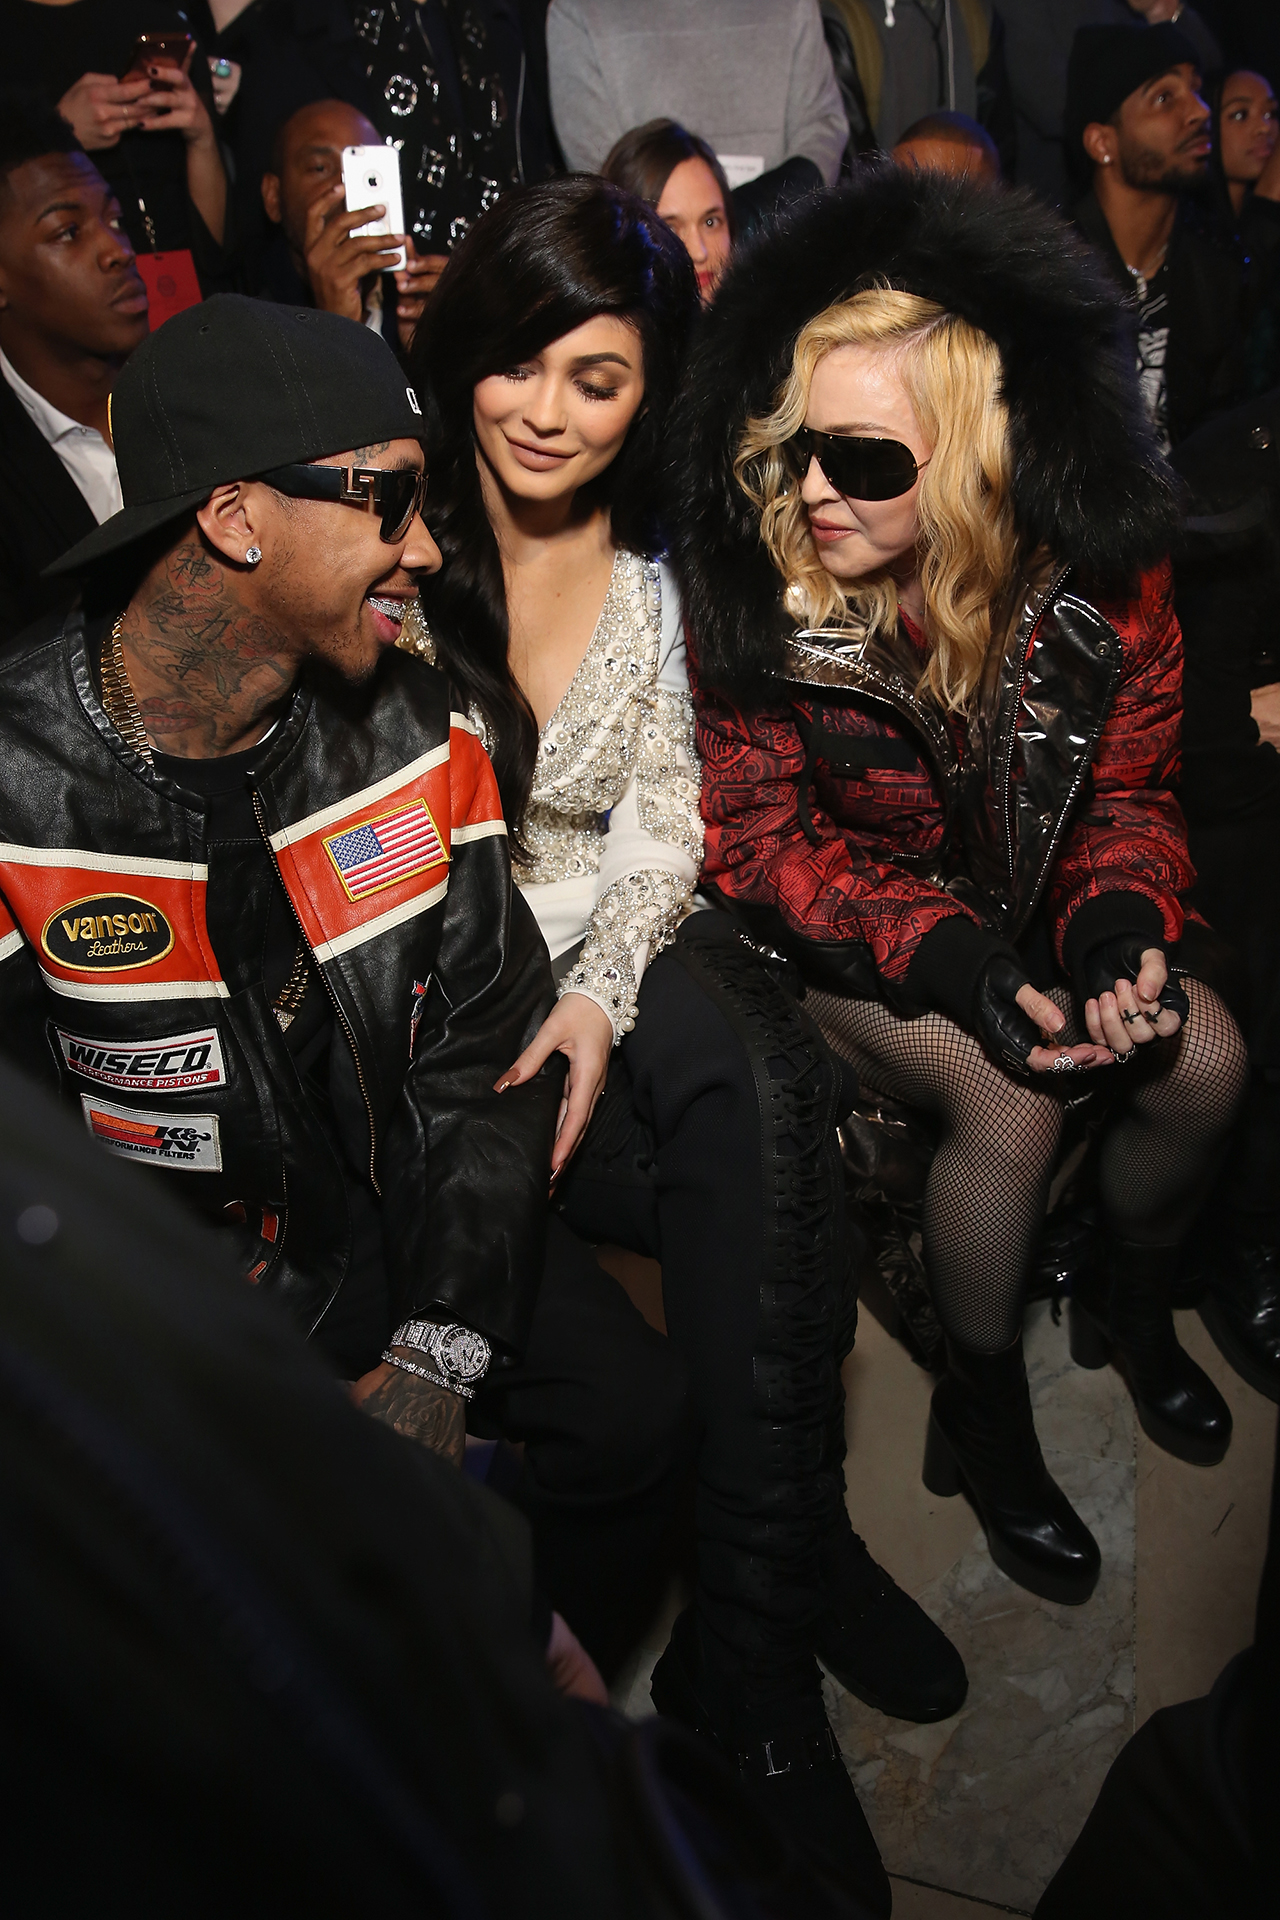 NEW YORK, NY - FEBRUARY 13: Tyga, Kylie Jenner, and Madonna attend the Philipp Plein collection during, New York Fashion Week: The Shows at New York Public Library on February 13, 2017 in New York City.  (Photo by Monica Schipper/Getty Images for New York Fashion Week: The Shows)